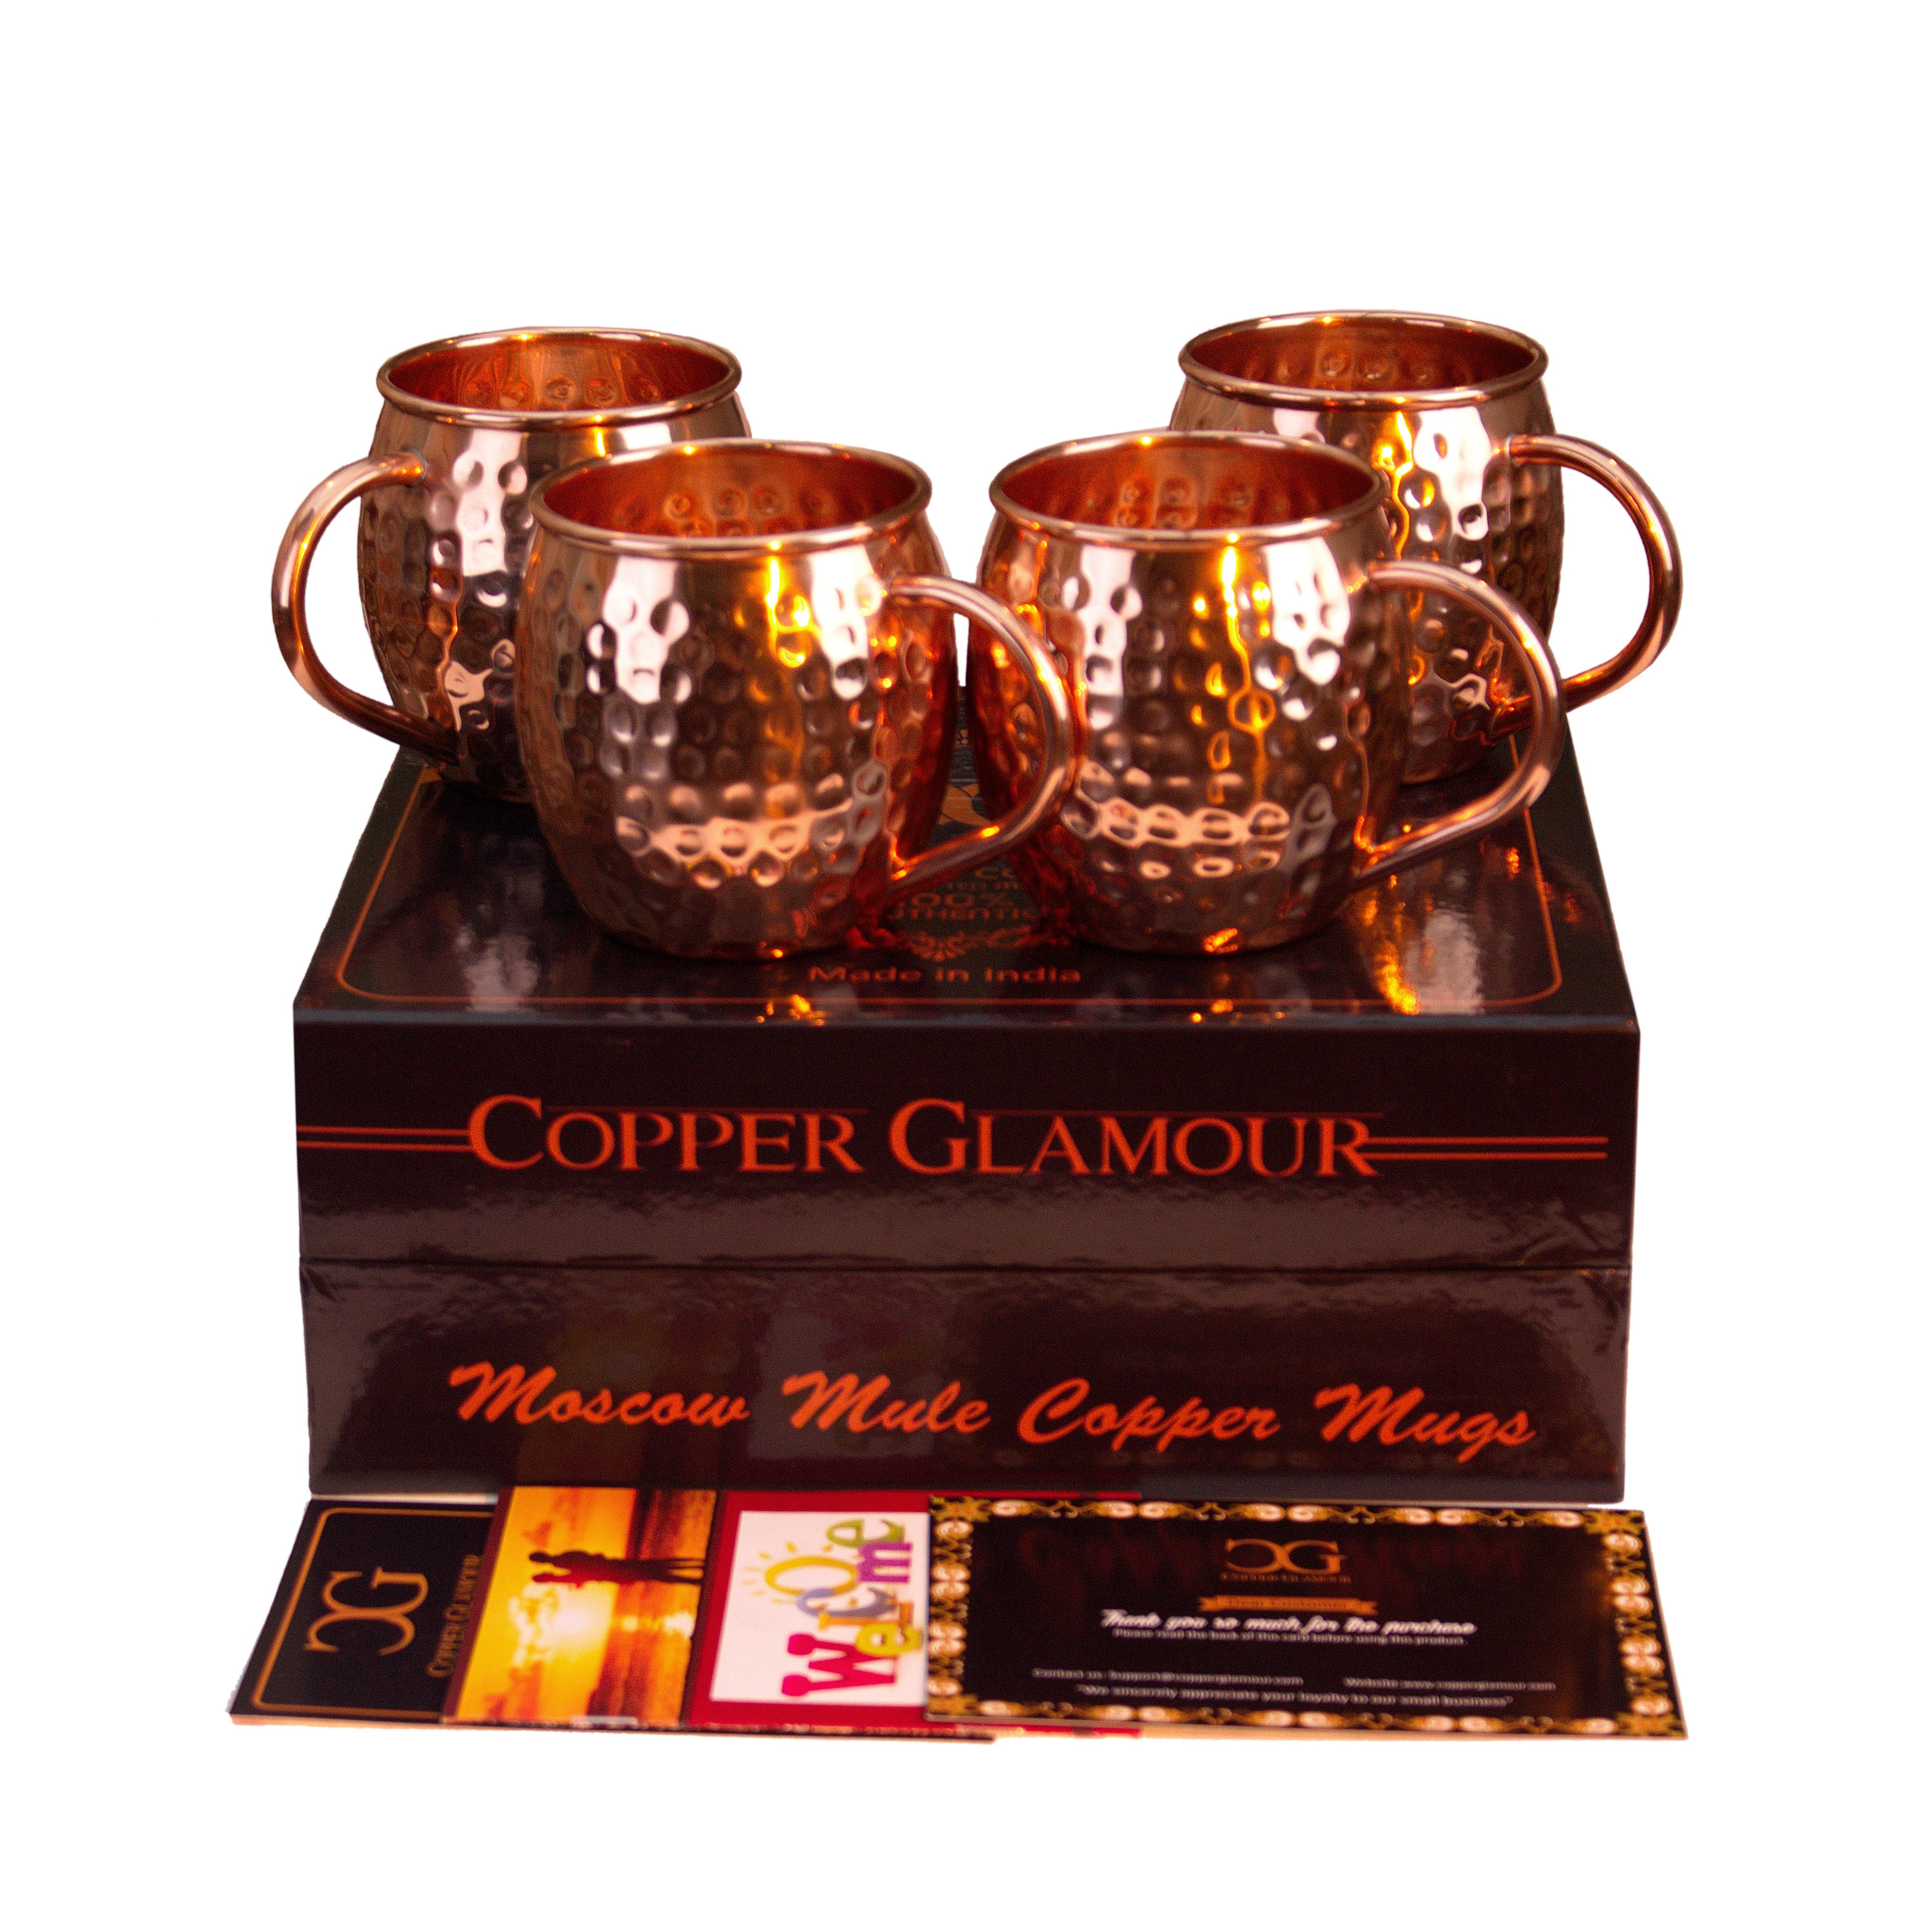 Copper Glamour Moscow Mule Copper Mugs Set Of 4 Gift